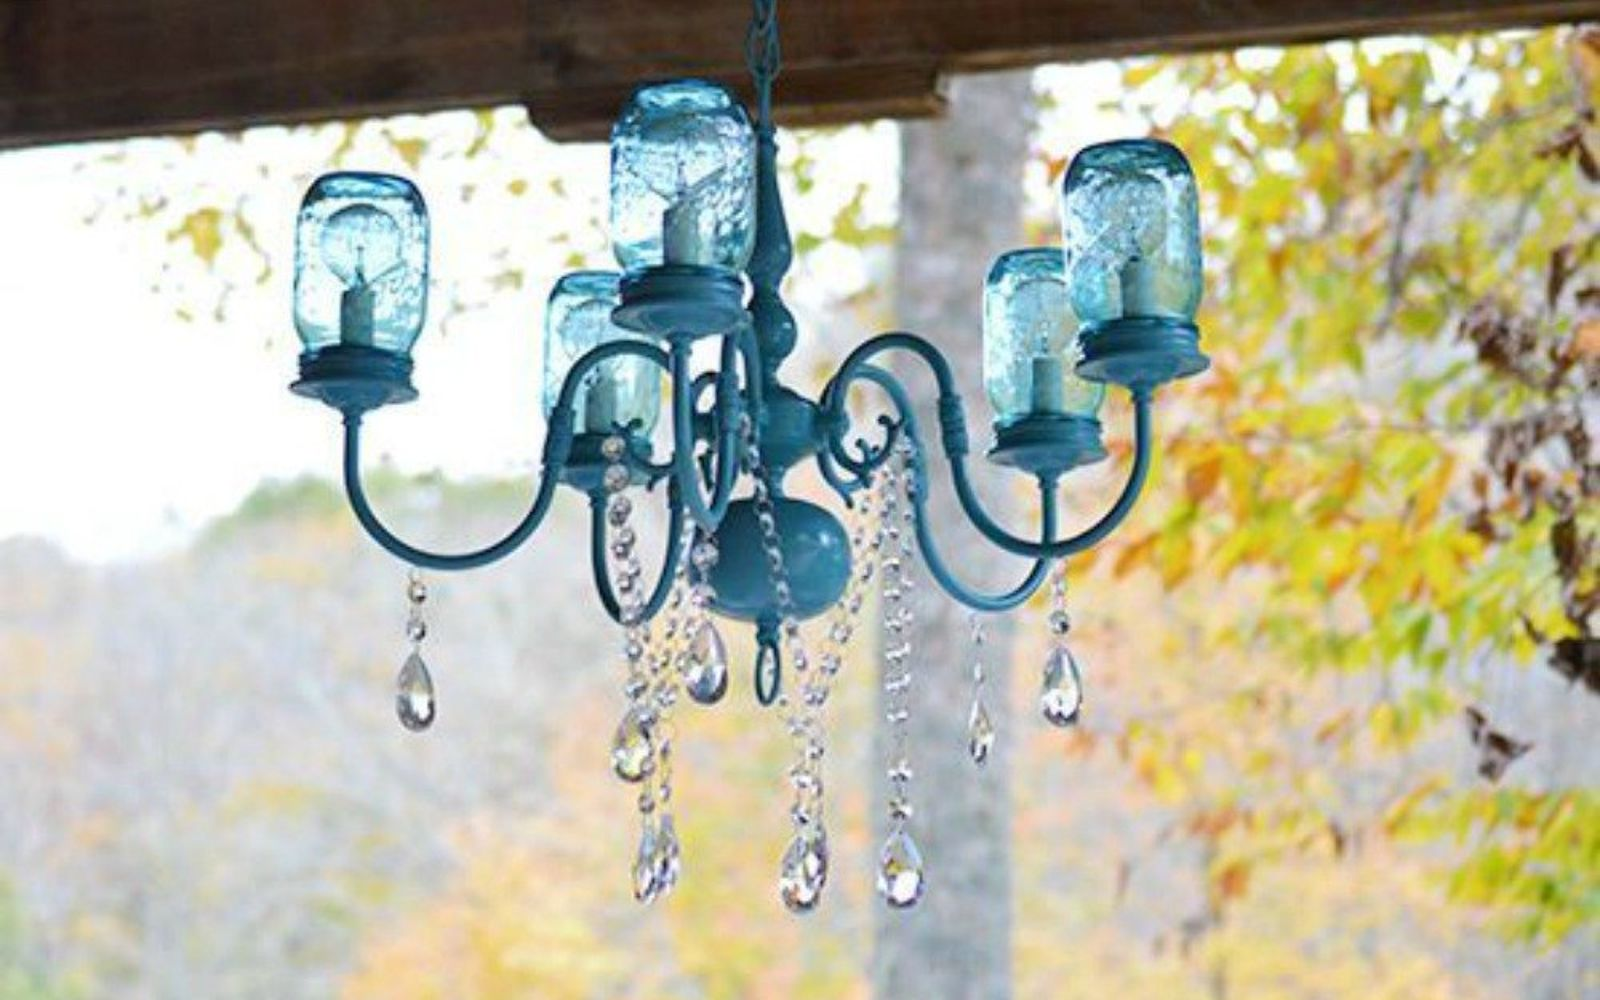 s 14 exciting mason jar ideas you just have to try, mason jars, 10 The breathtaking boho chic chandelier